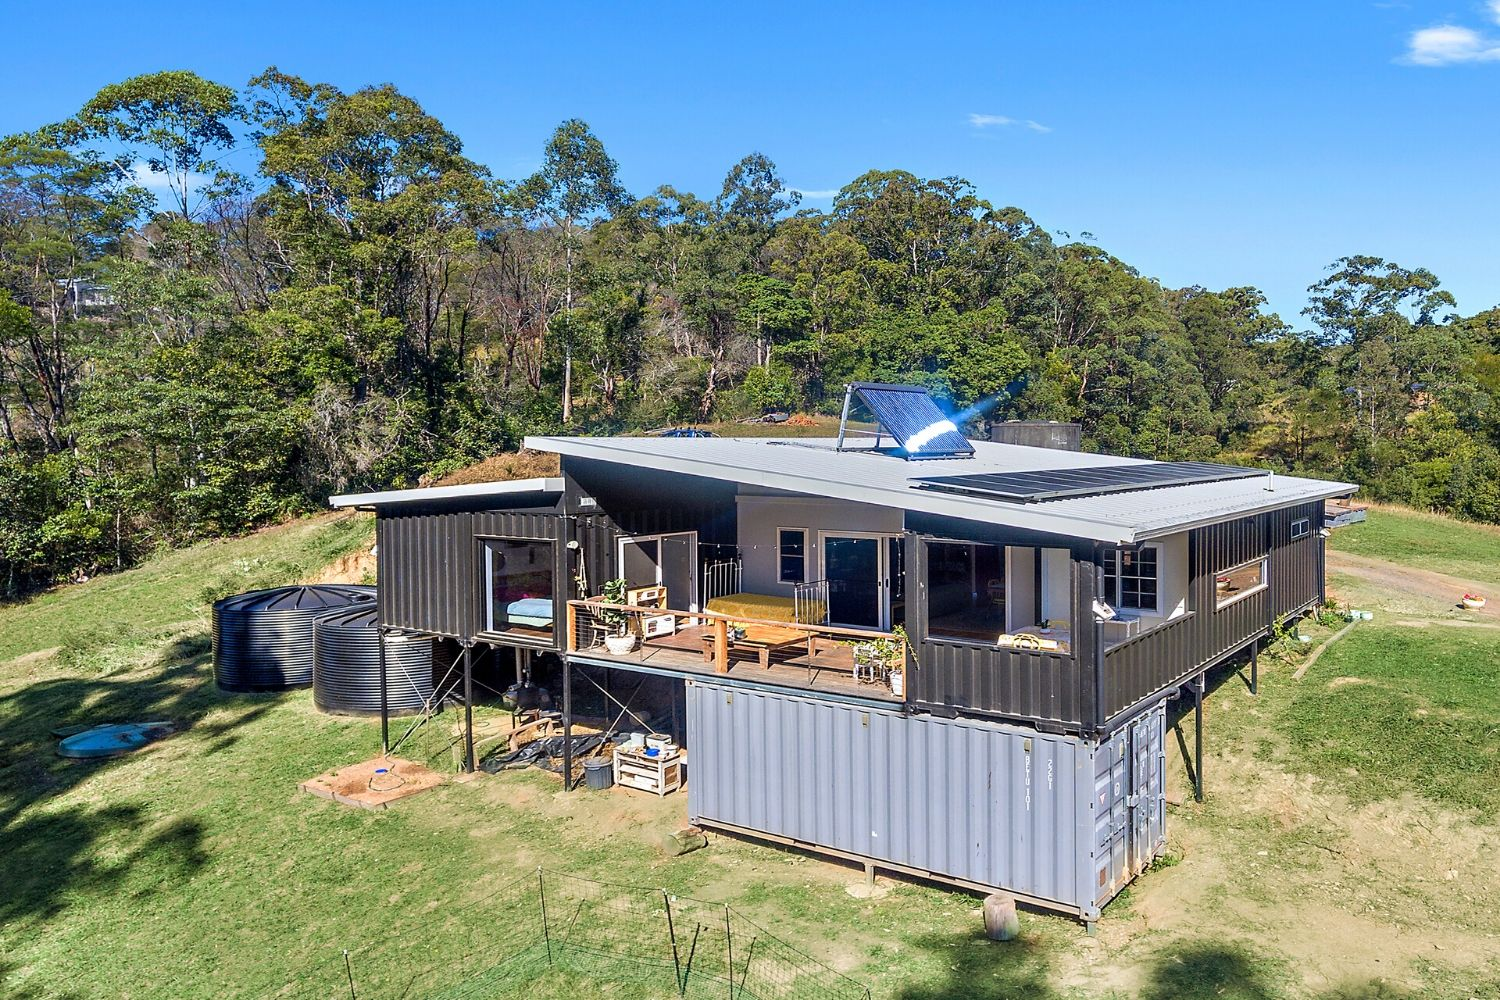 Shipping Container Home: The Best Container Home Designs  Better Homes and Gardens